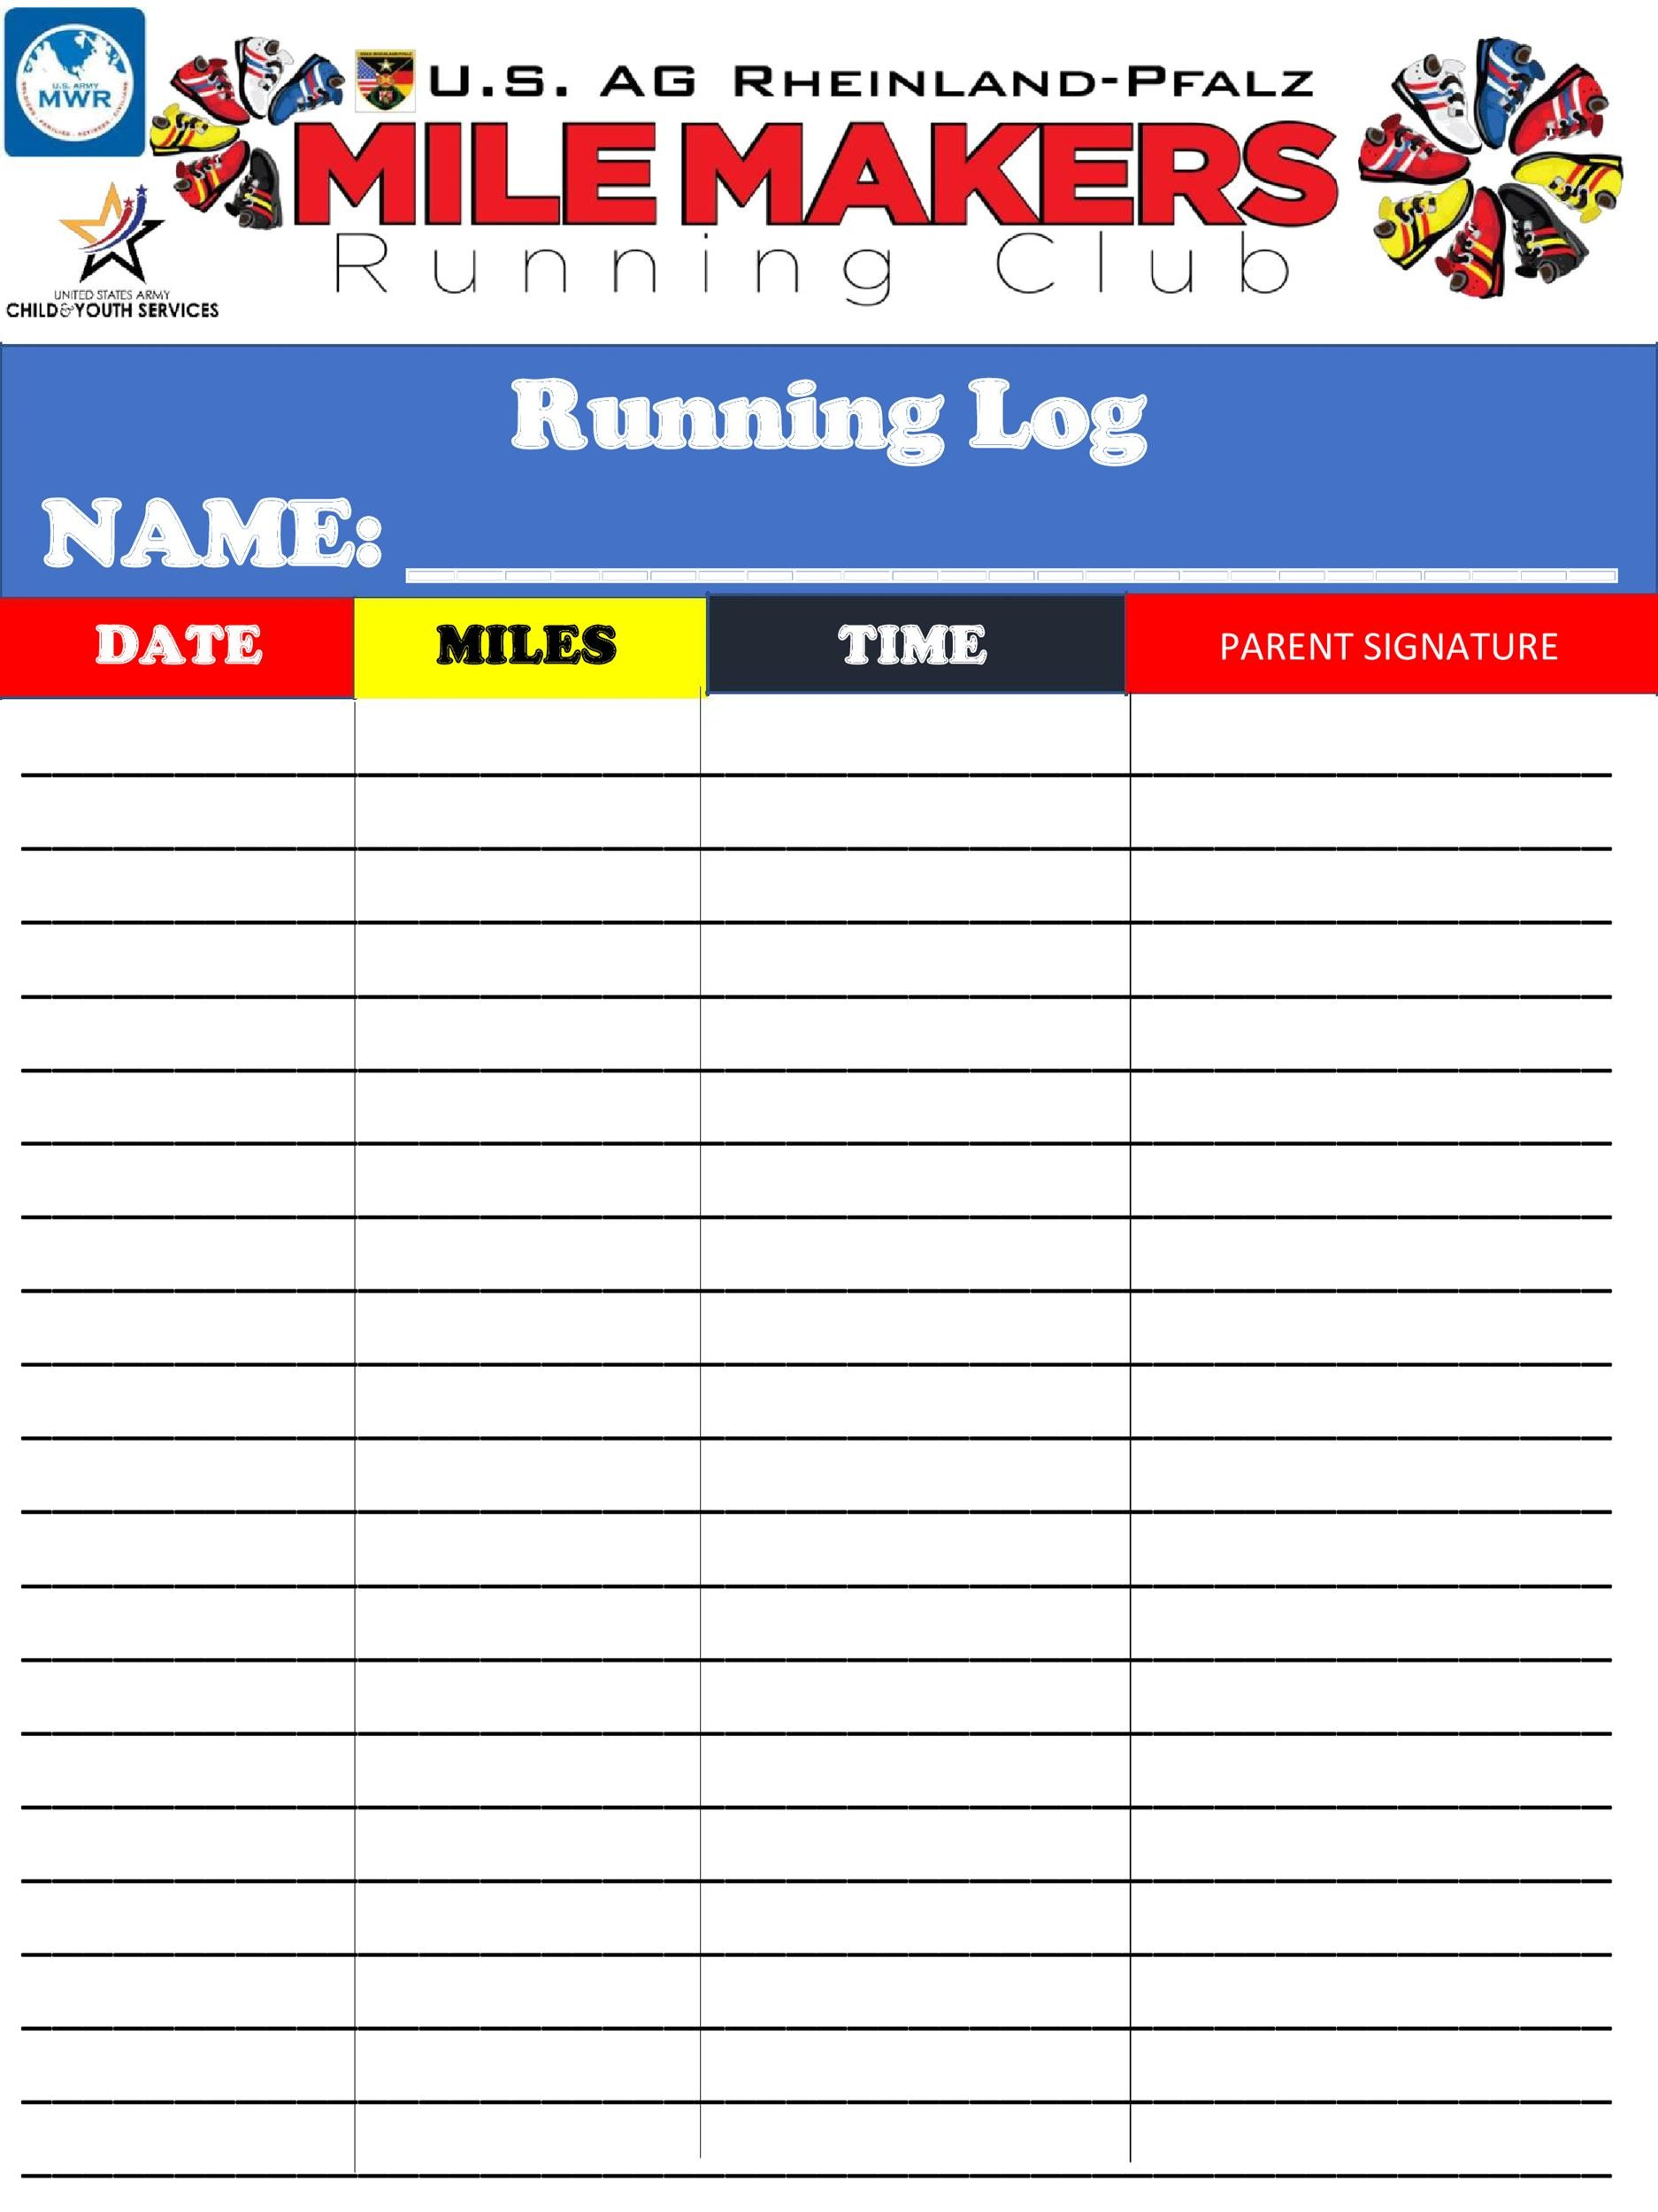 image relating to Printable Running Log named 49 Easy Jogging Log Templates (+Going for walks Charts) ᐅ Template Lab